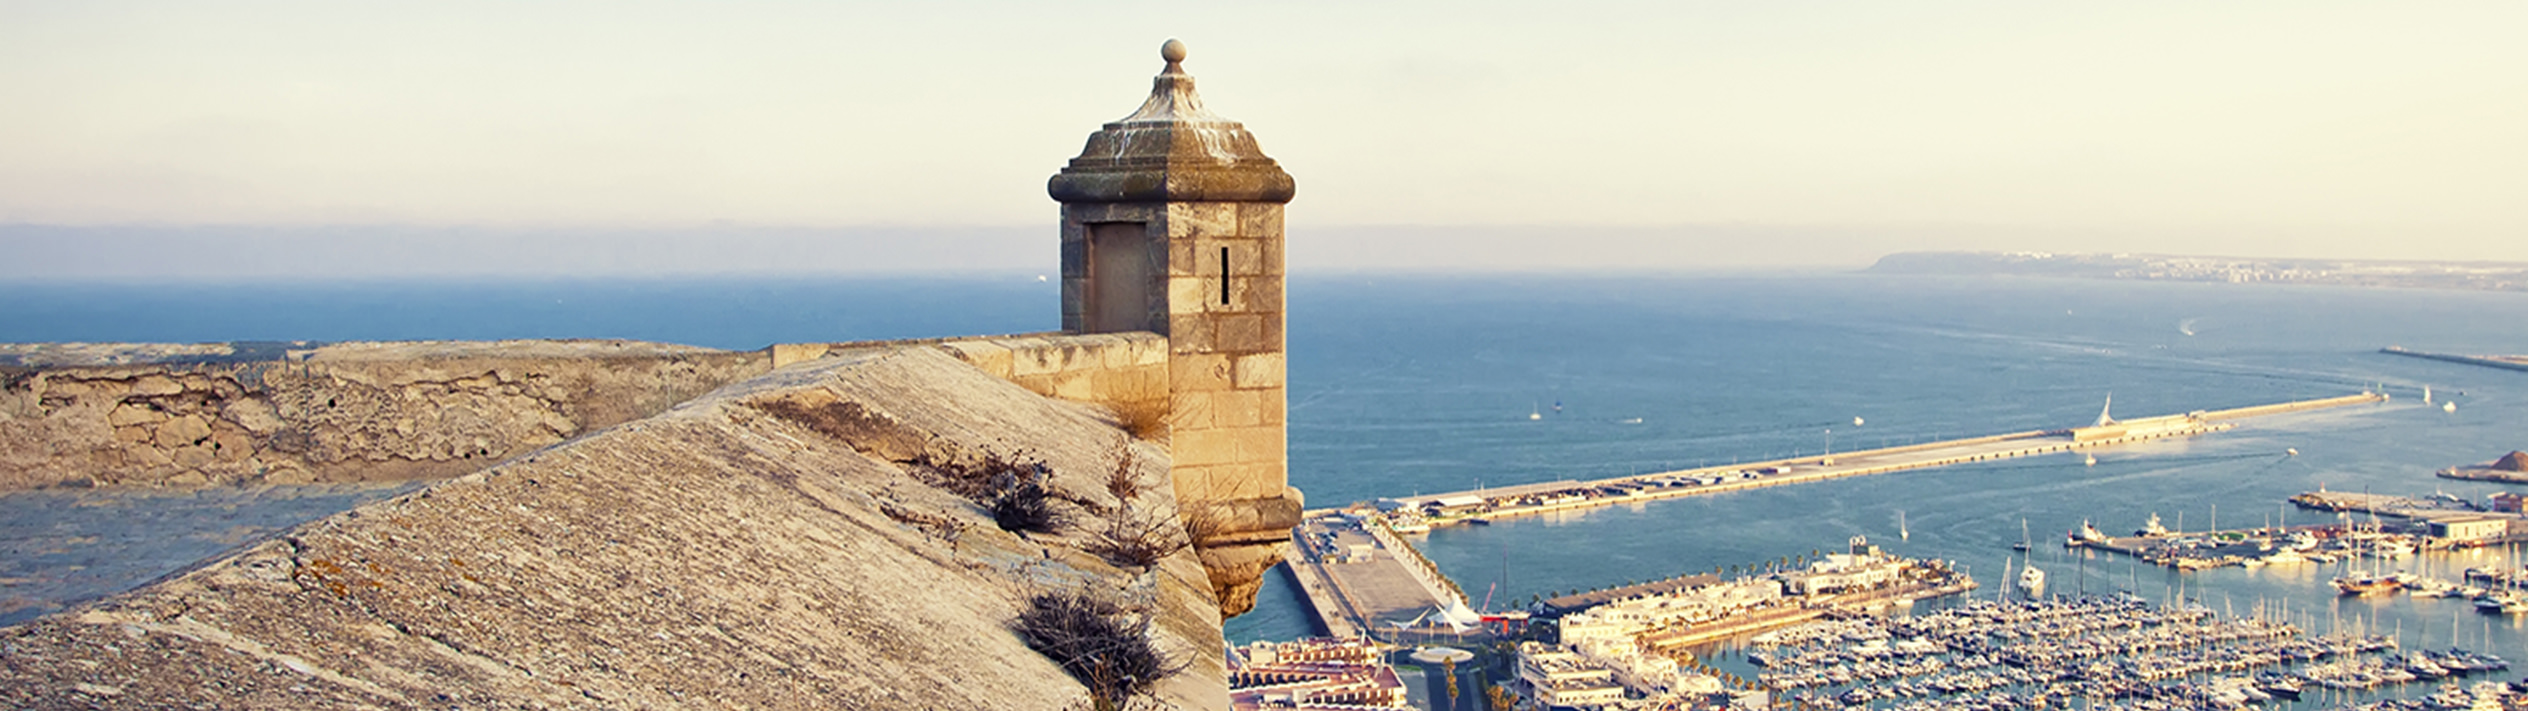 Book a flight from Frankfurt to Alicante from 99 € & fly safely - Lufthansa